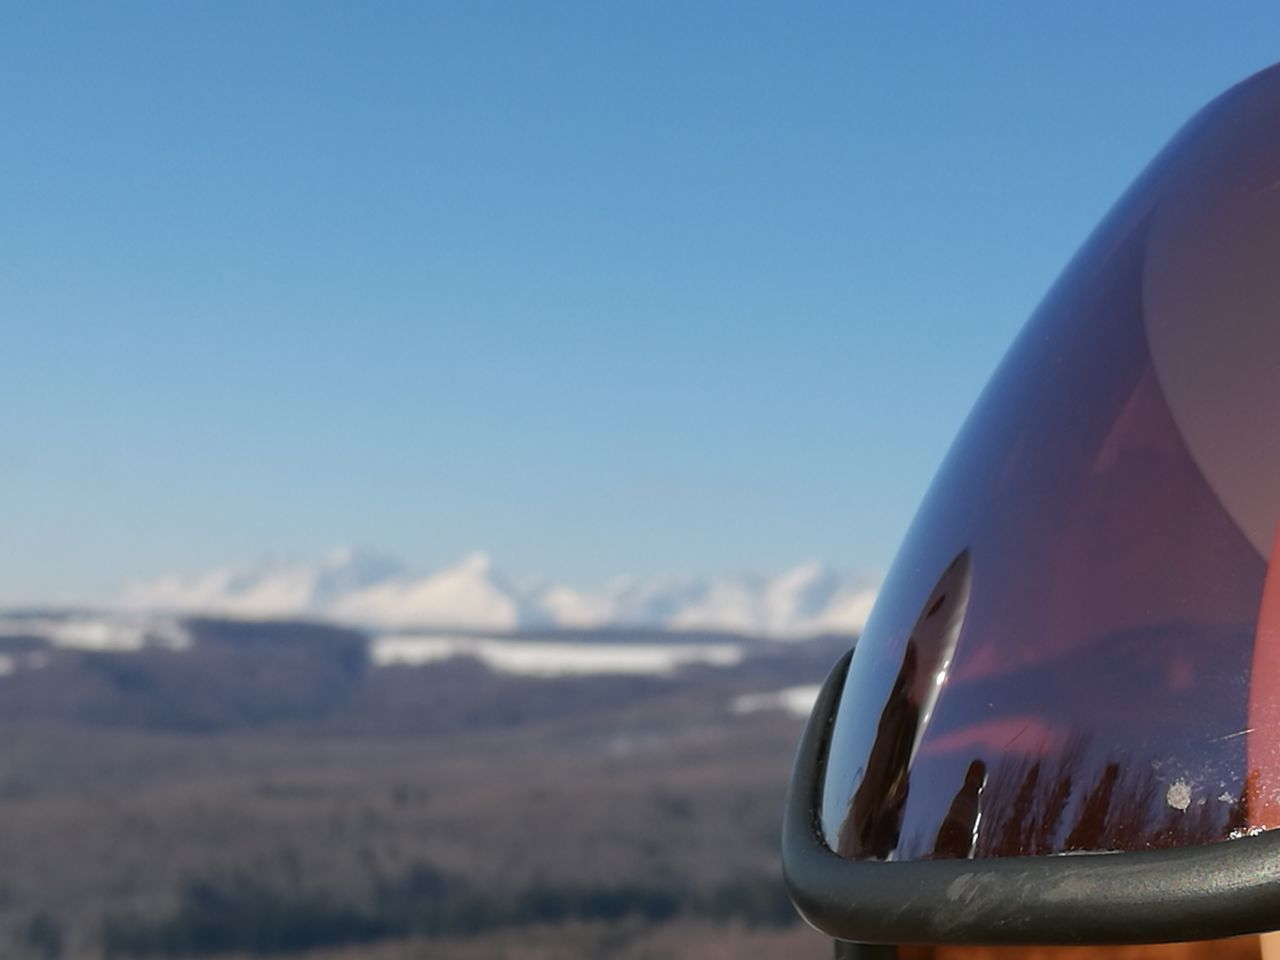 Skiing Day Ski Outdoors Close-up Mountains In Background High Tatras :) Skiing Helmet